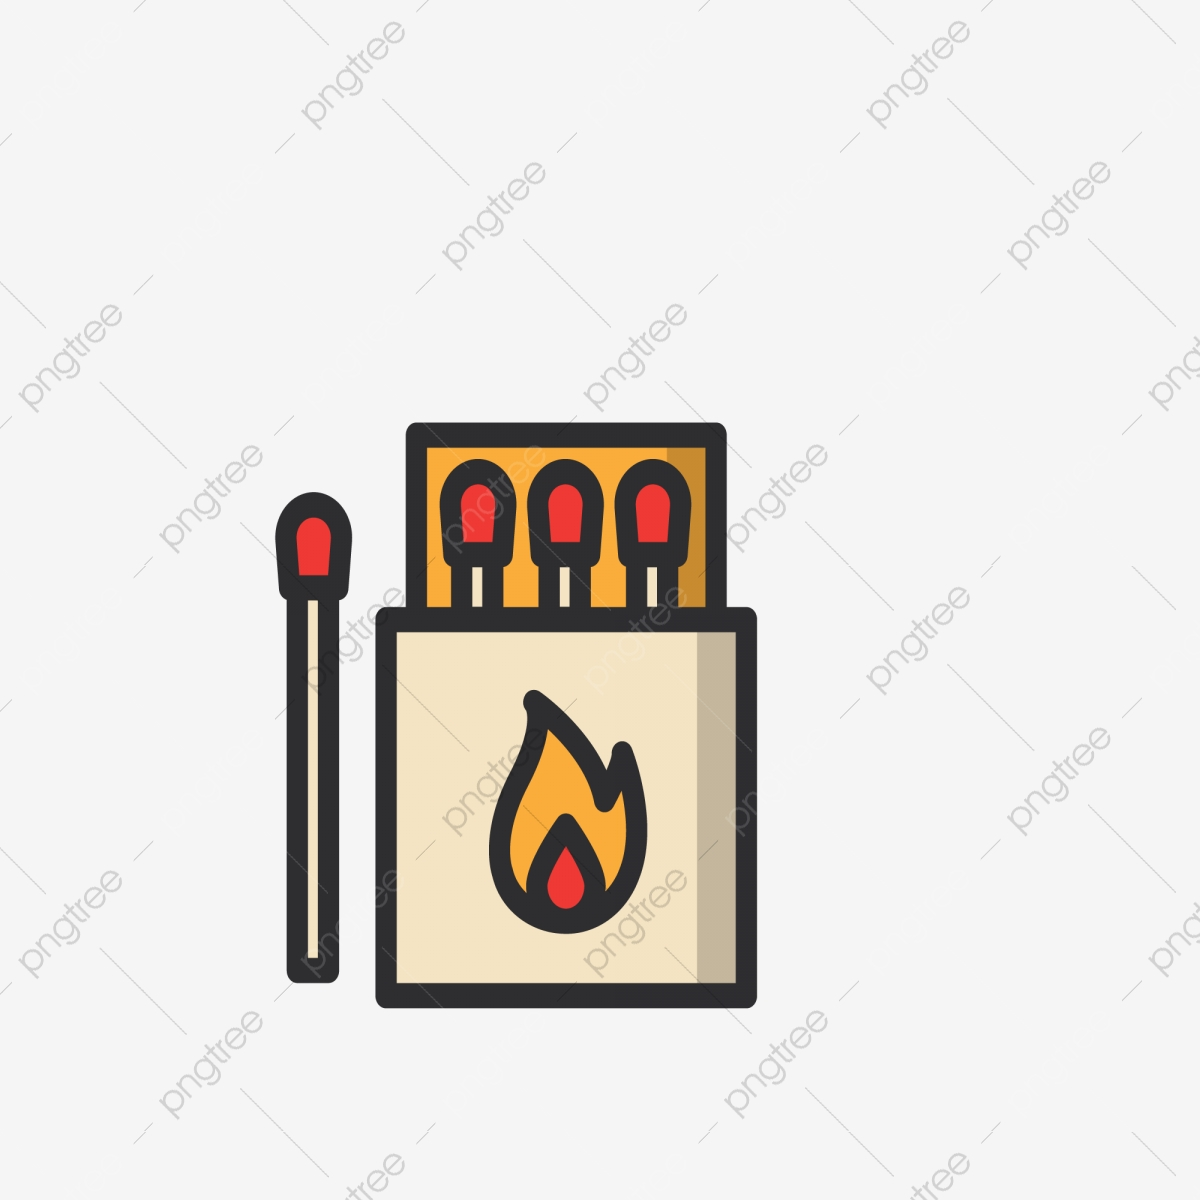 cartoon match icon free illustration matchstick tool yellow match ui app icon png and vector with transparent background for free download https pngtree com freepng cartoon match icon free illustration 4694551 html